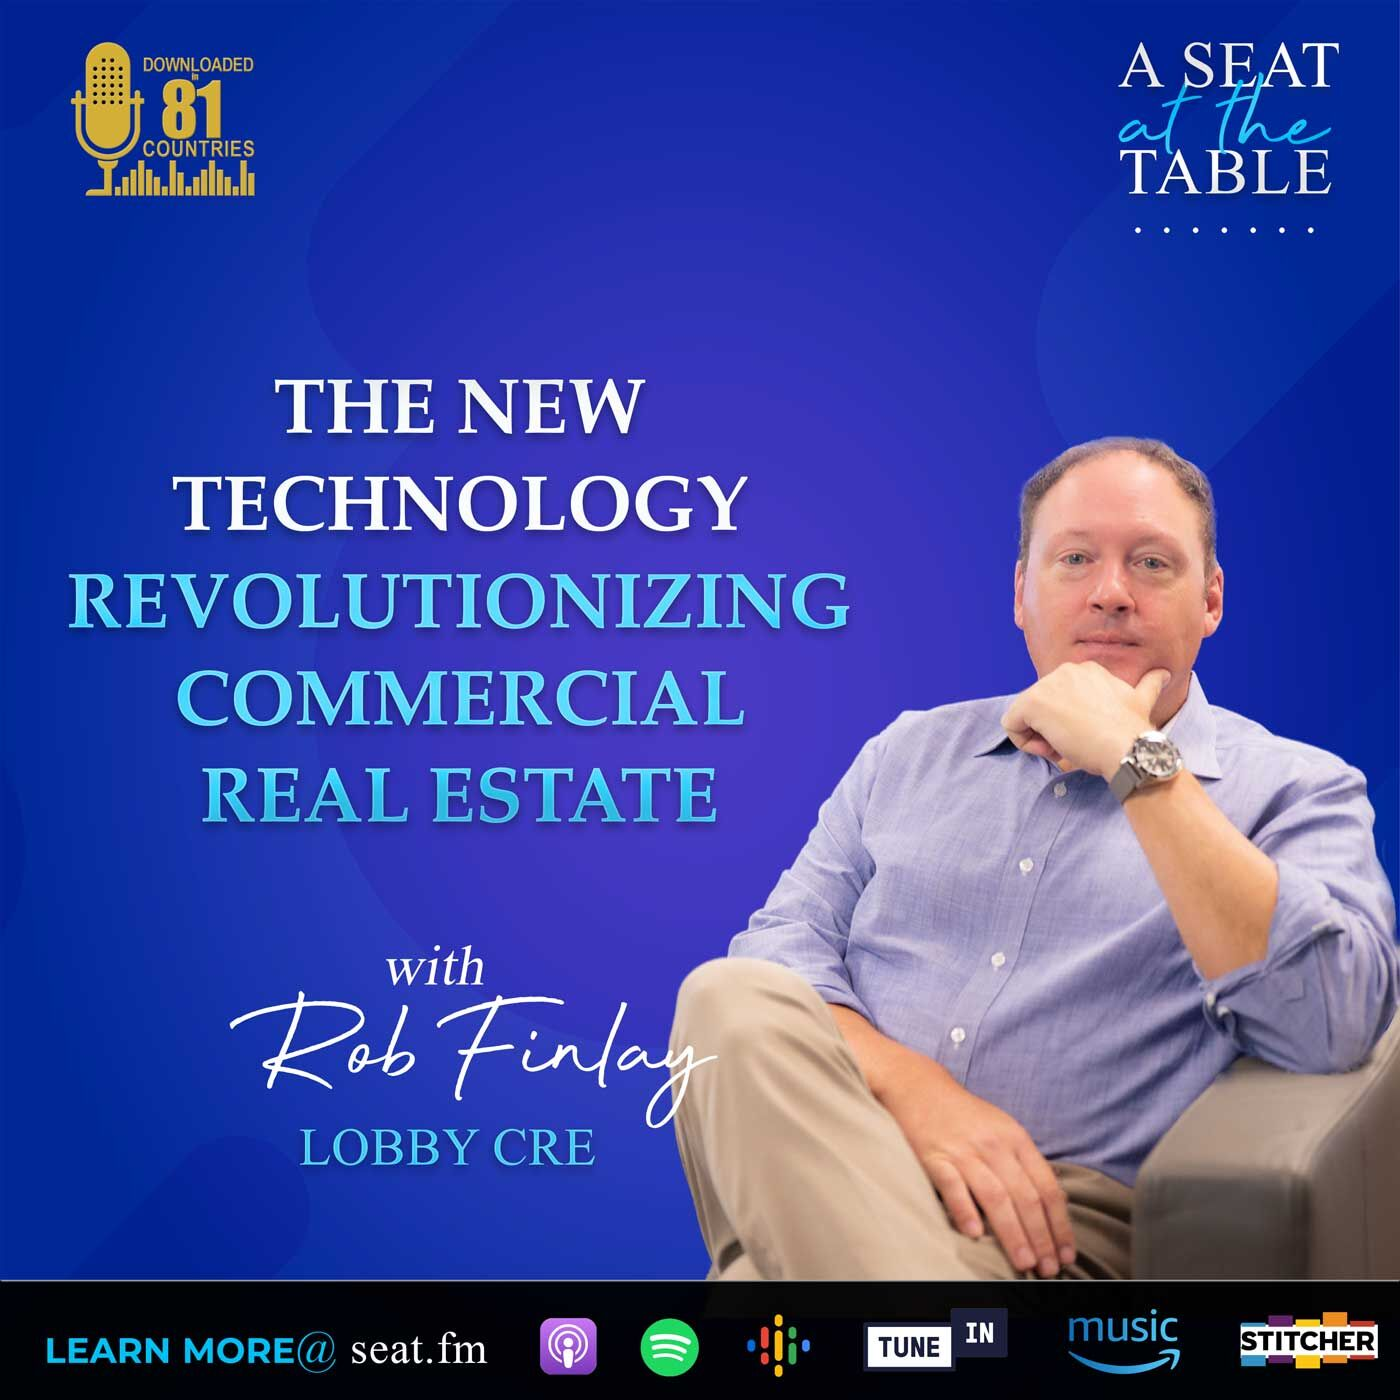 The New Technology Revolutionizing Commercial Real Estate